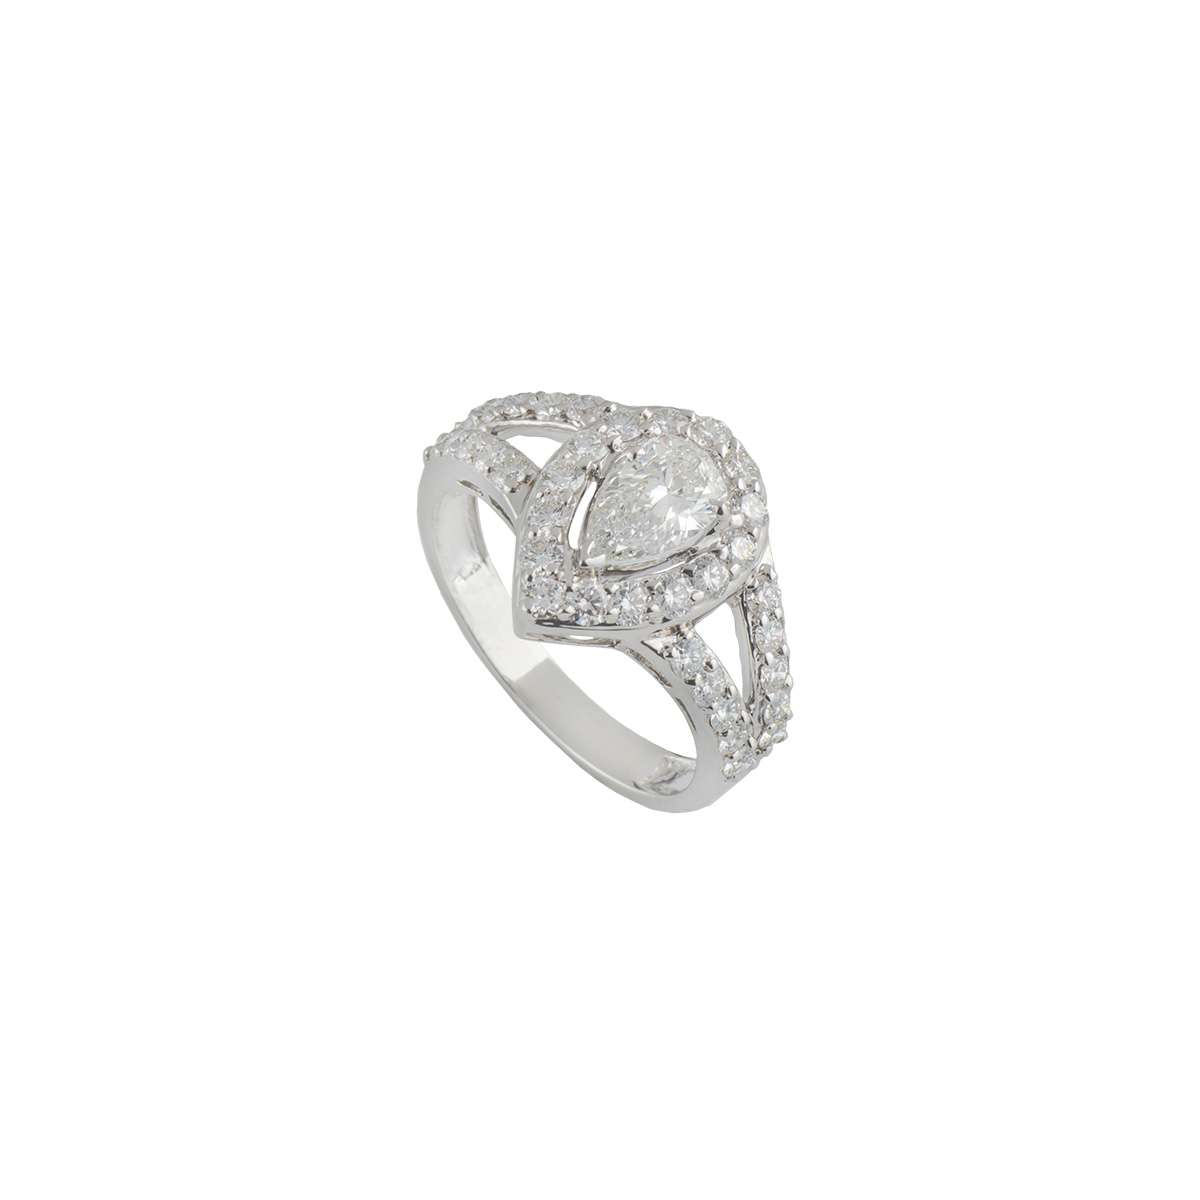 18k White Gold Pear Cut Diamond Ring 1.61ct